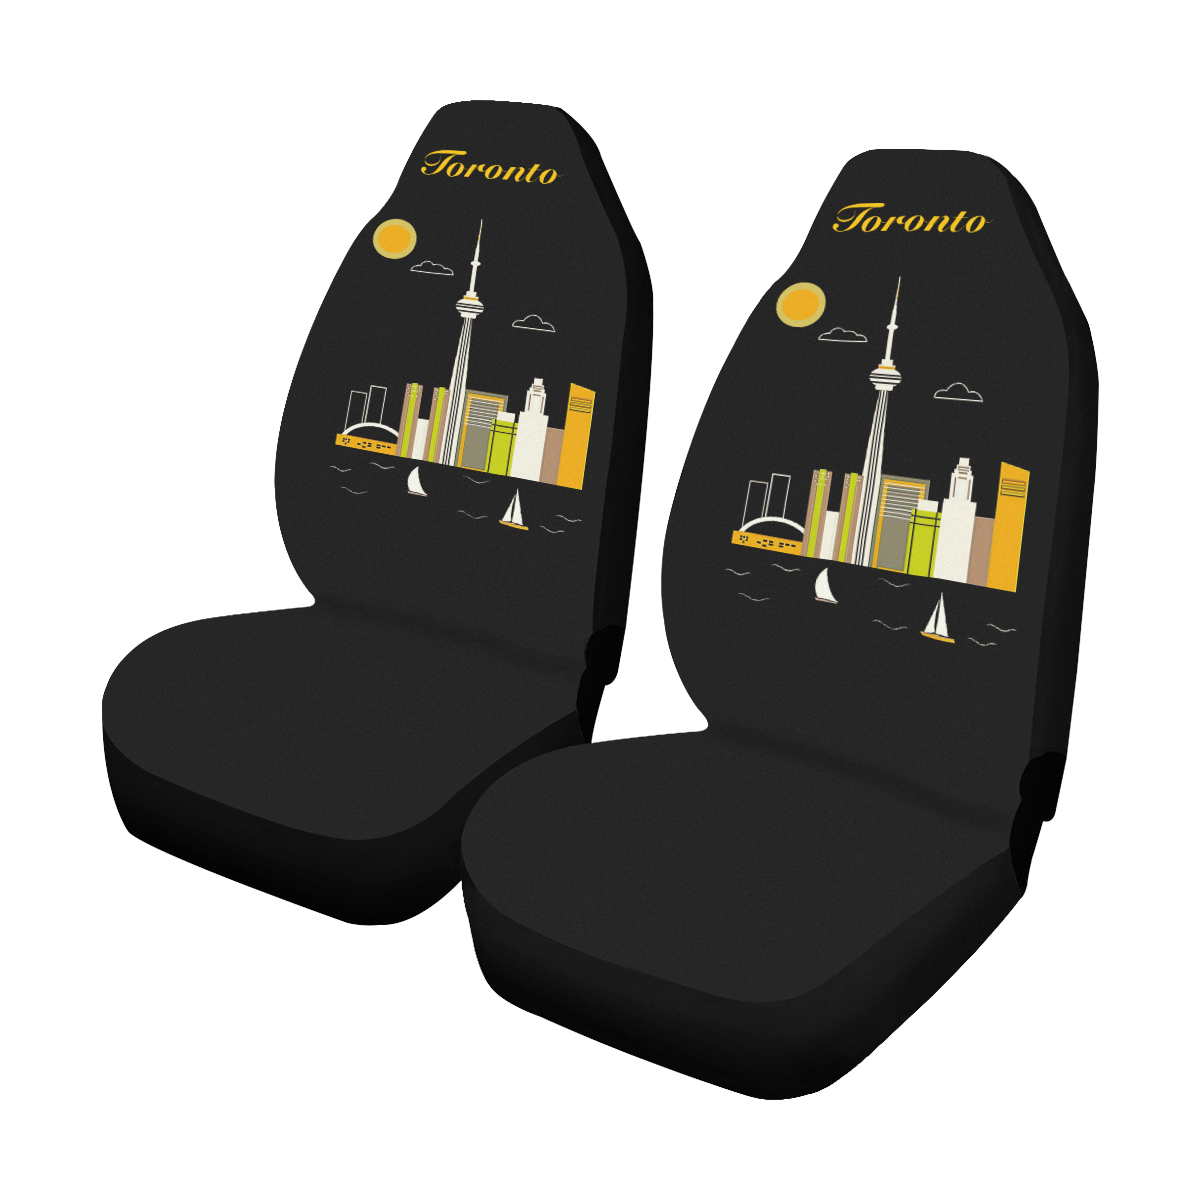 Toronto Car Seat Covers (Set of 2)